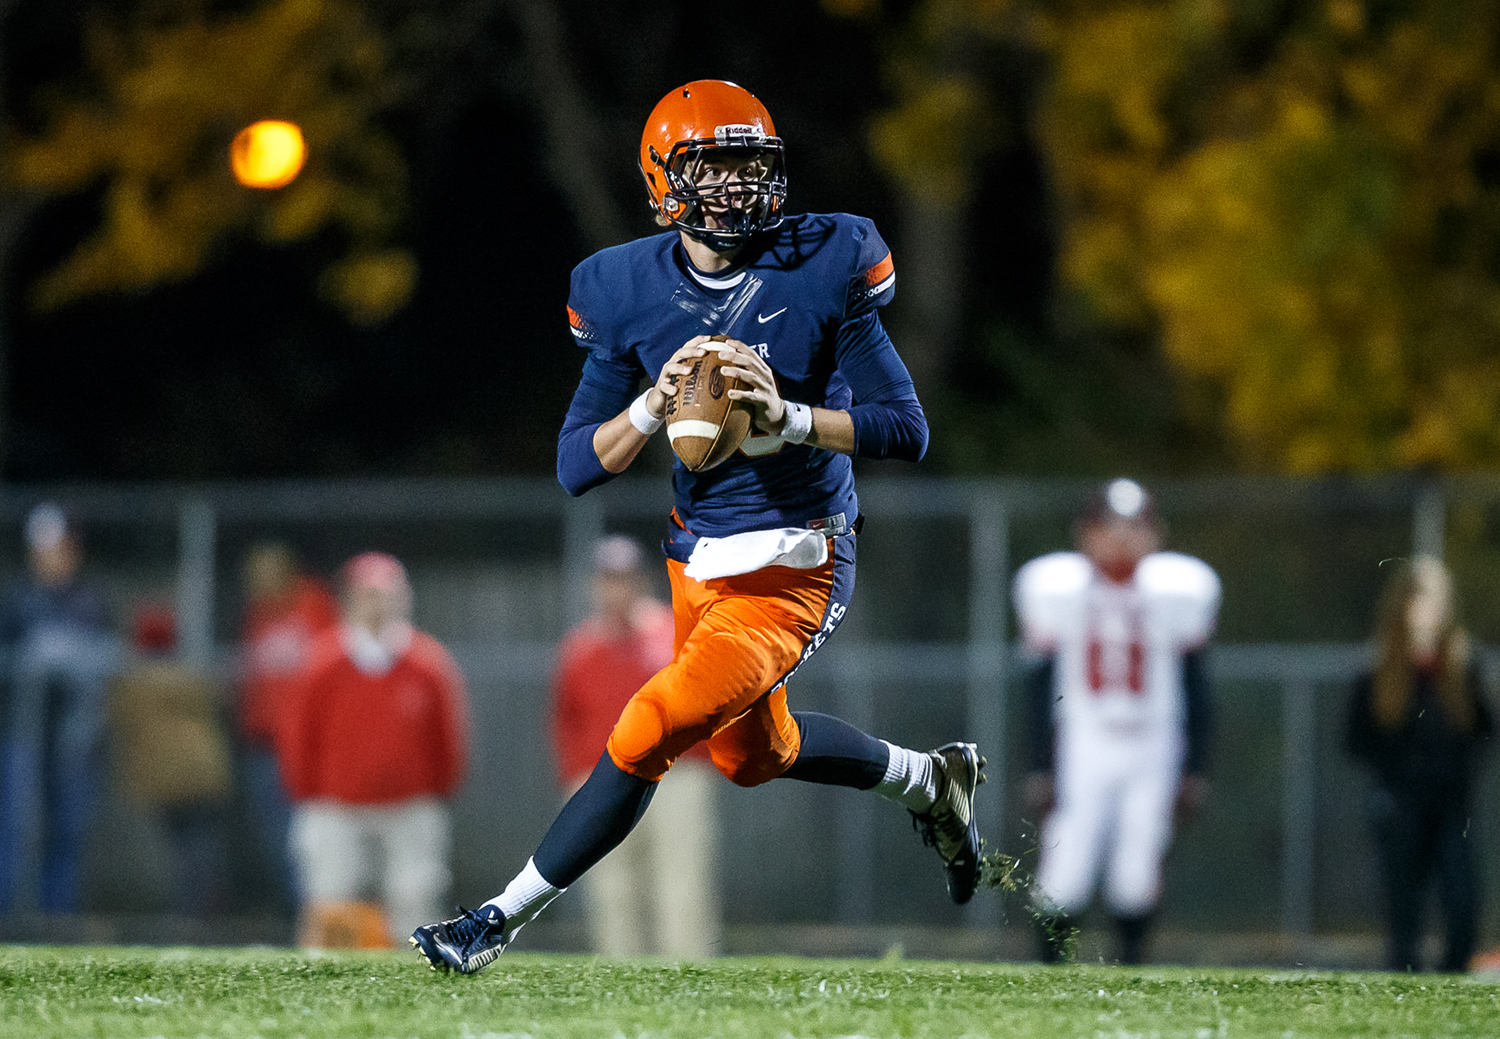 Rochester's Danny Zeigler (10) rolls out of the pocket as he looks for an open receiver against Mt. Zion in the first half during the first round of the Class 4A playoffs at Rocket Booster Field, Saturday, Nov. 1, 2014, in Rochester, Ill. Justin L. Fowler/The State Journal-Register